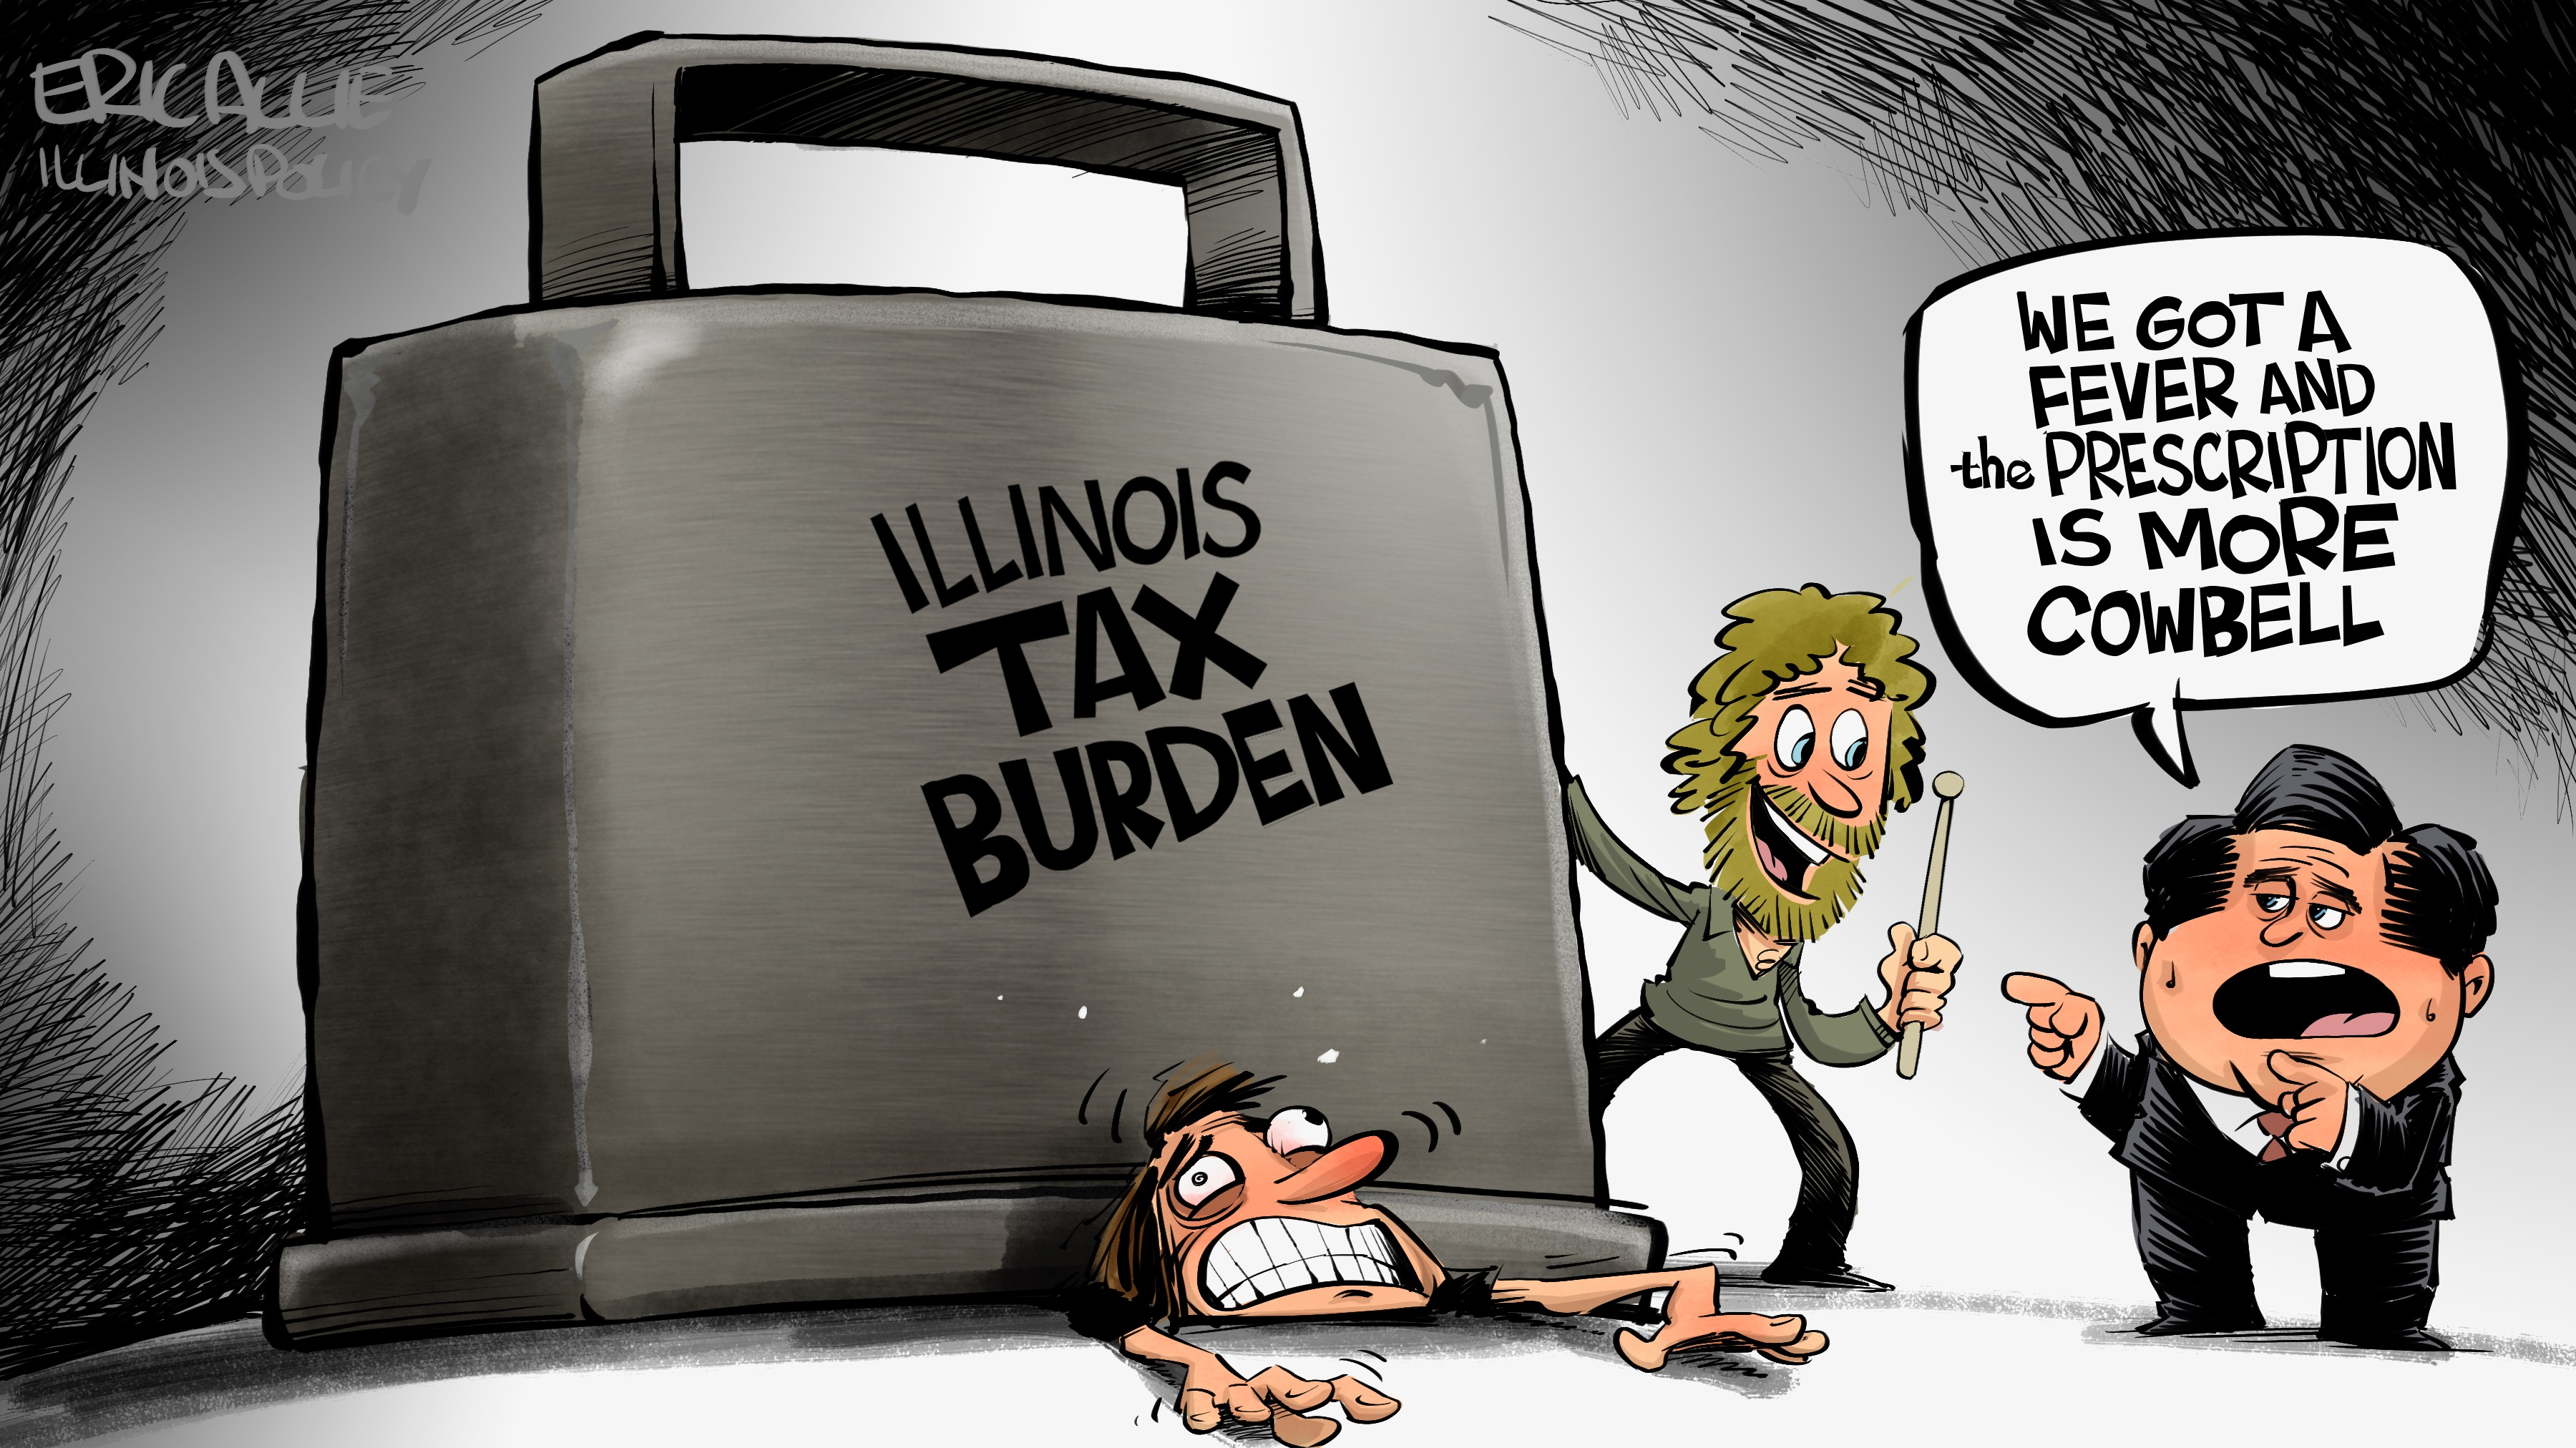 Illinois tax burden: more cowbell